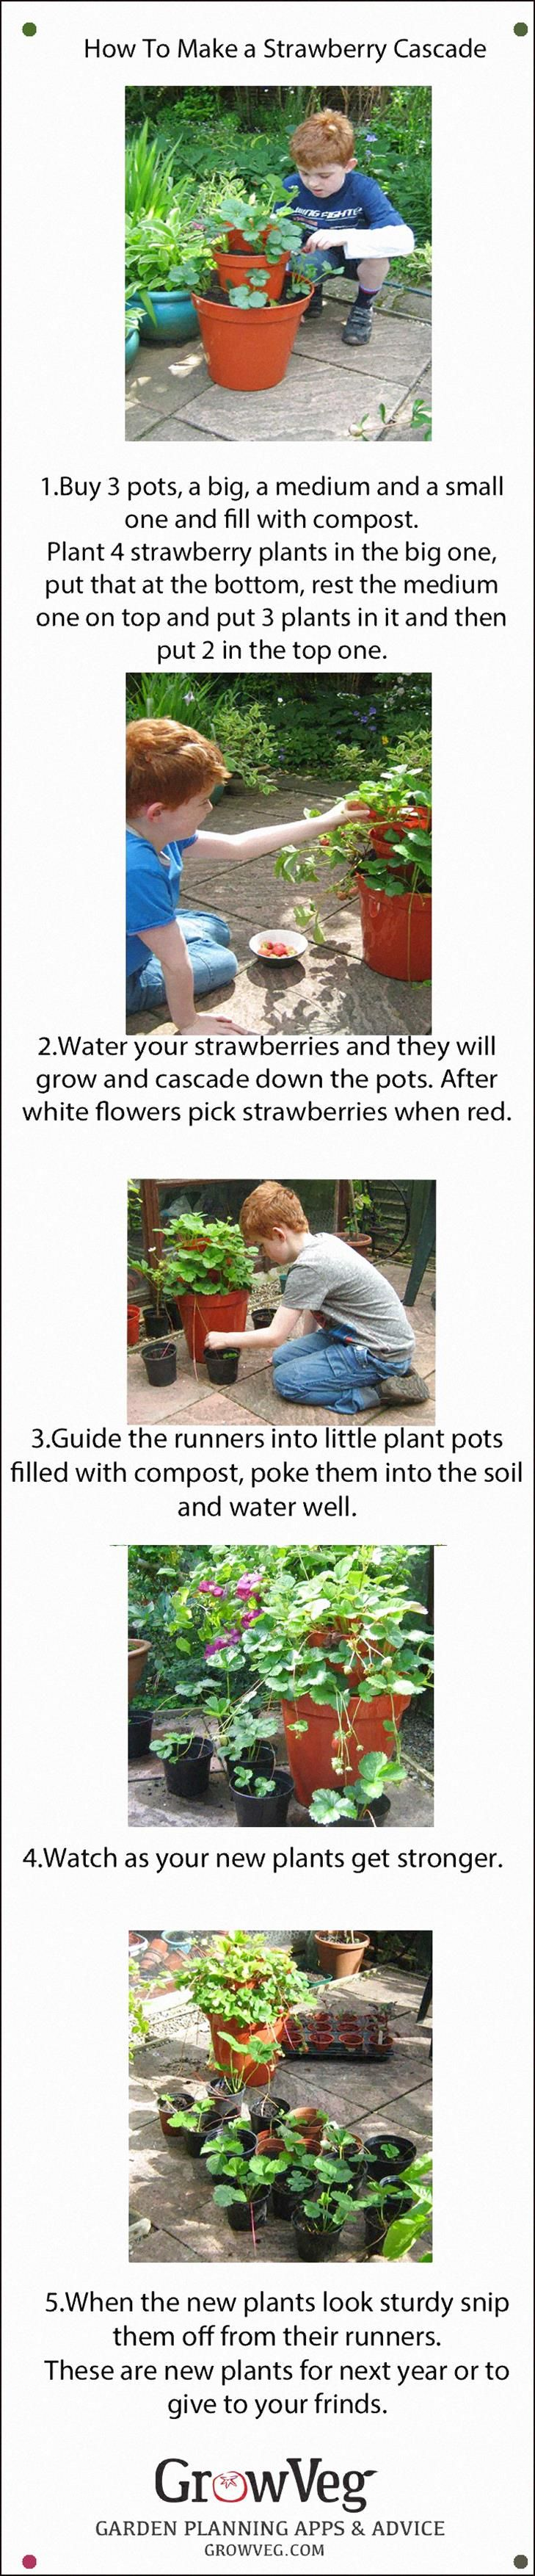 How To Make A Strawberry Cascade Using 3 Different Size Pots And Then After Having Picked The Strawberr Strawberry Plants Gardening For Kids Strawberry Runners